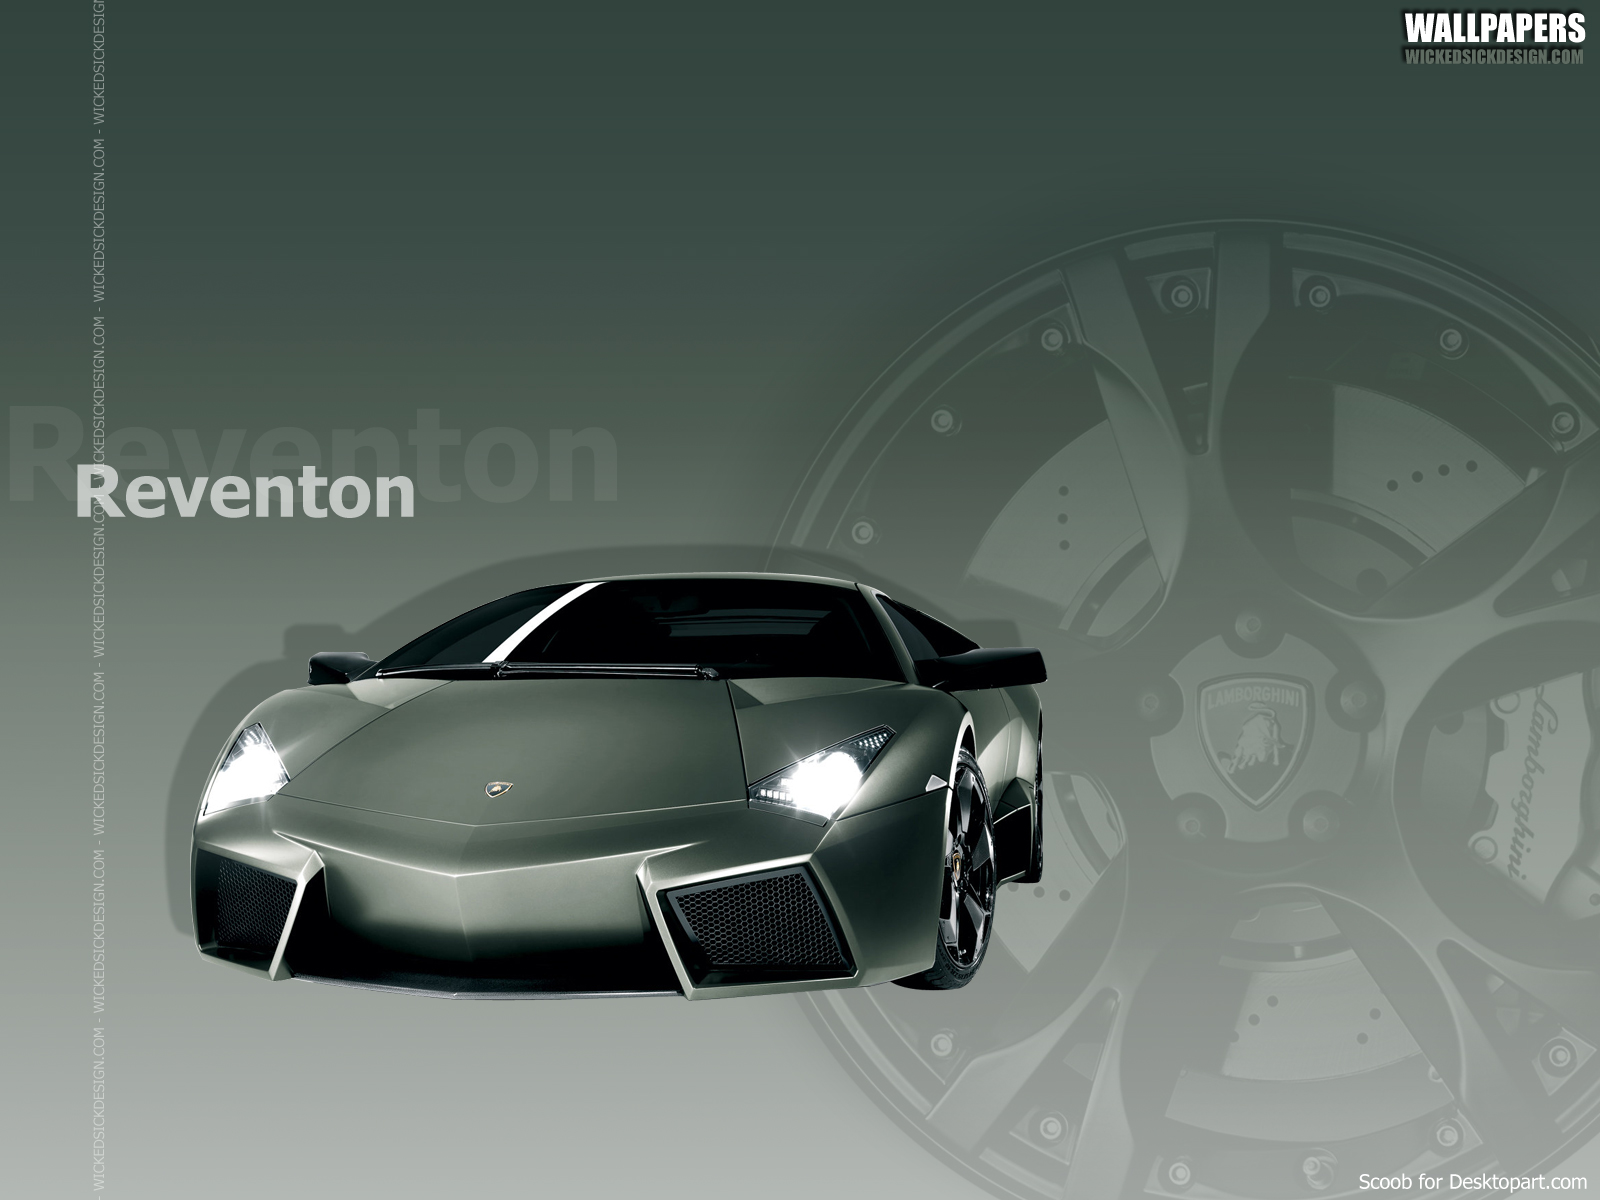 lamborghini reventon hot pursuit wallpapers - Lamborghini Reventon Hot Pursuit Your Wallpaper